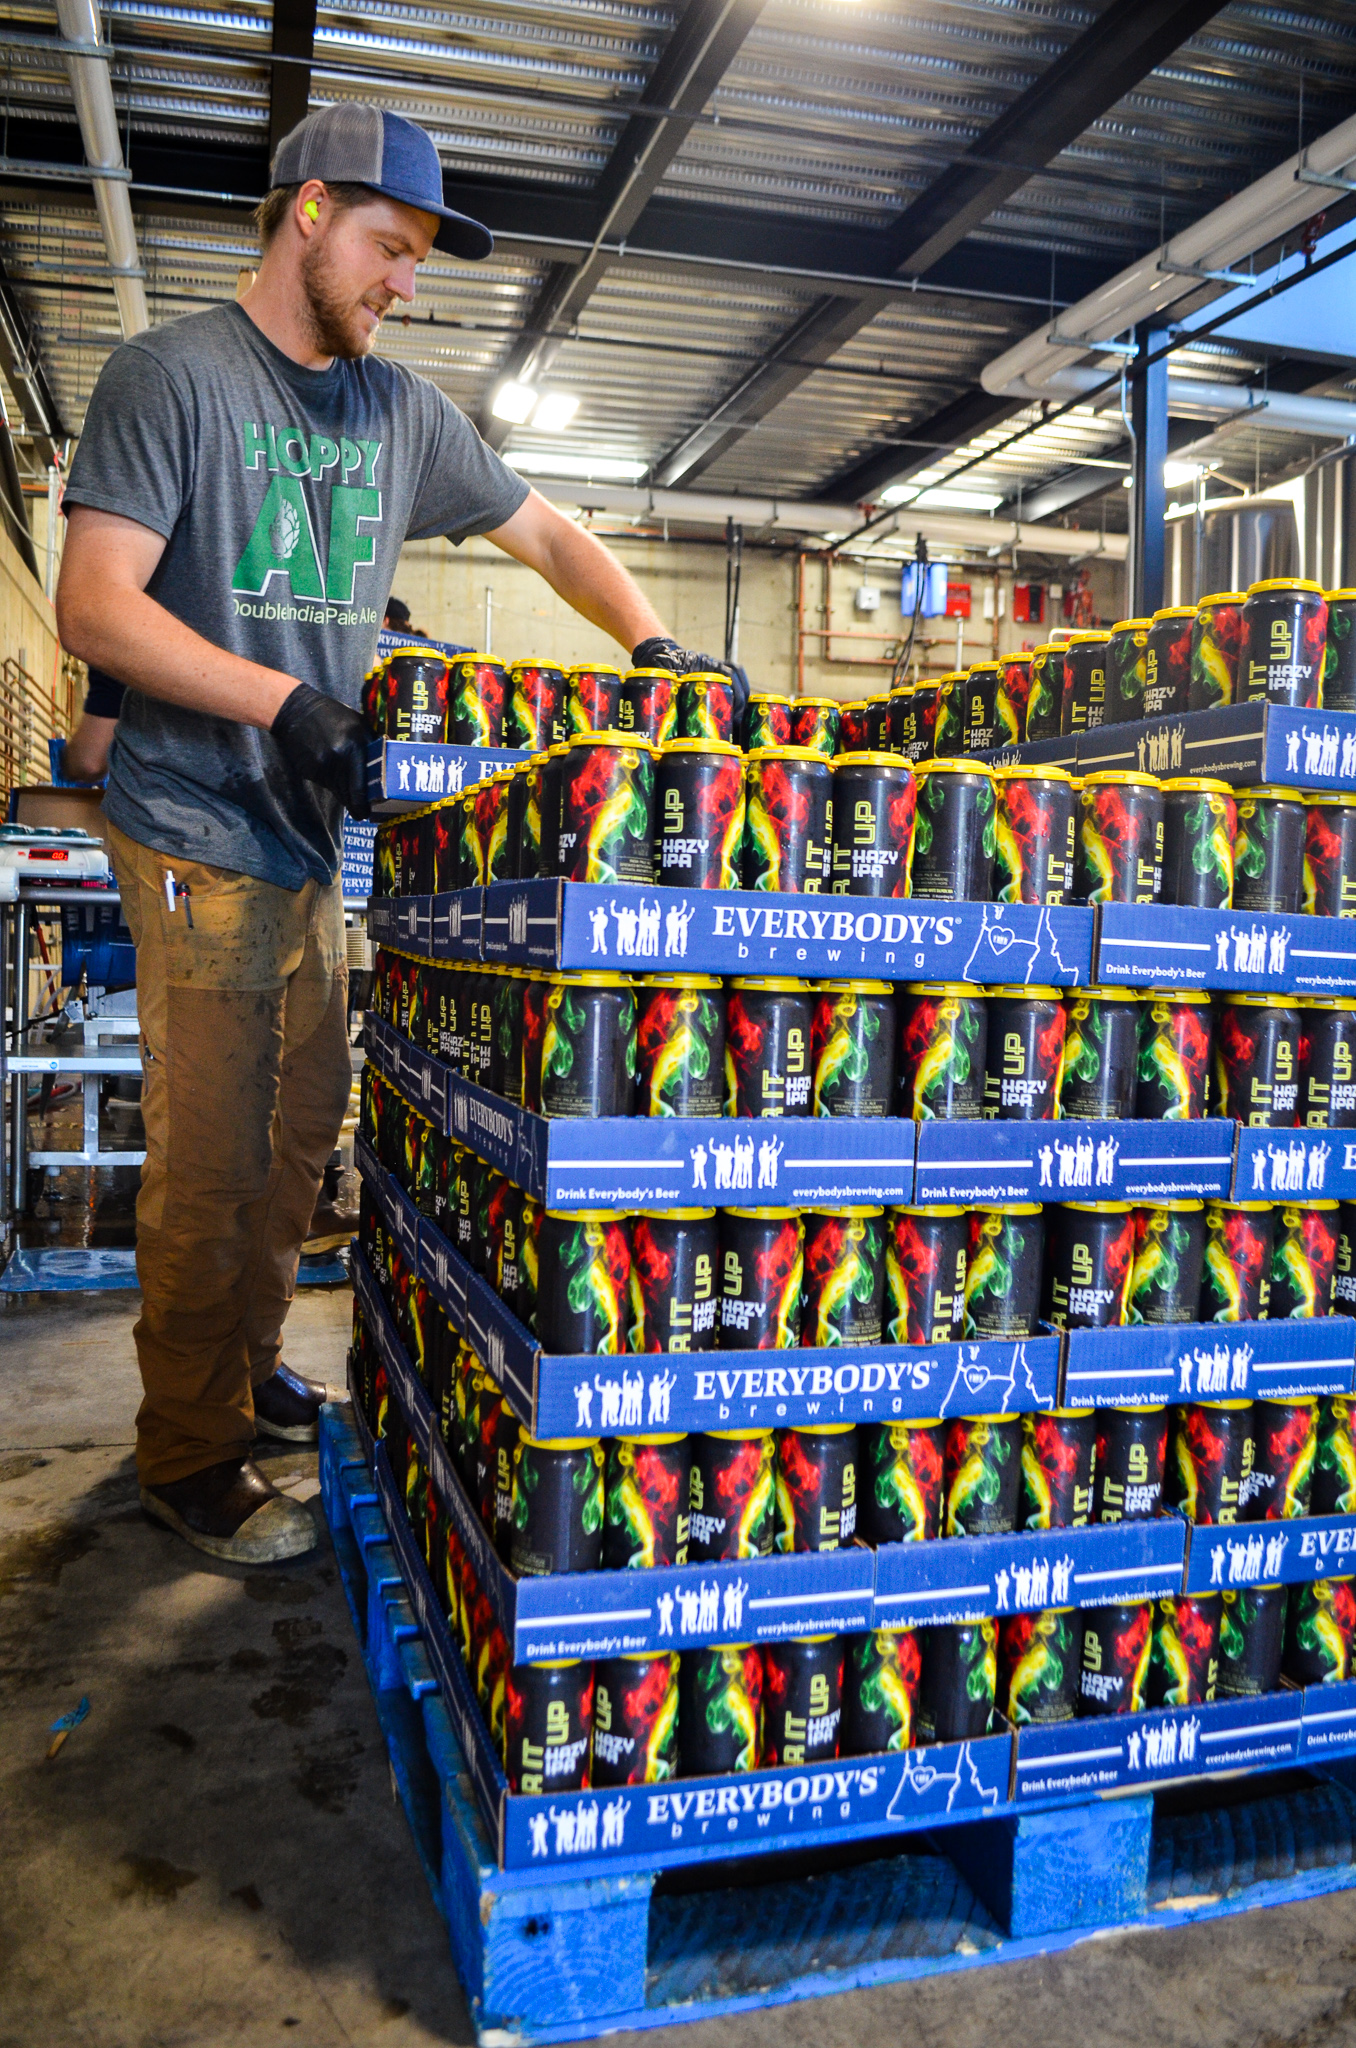 Josh Billings loading up the first pallet of Stir it Up Hazy IPA. (image courtesy of Everybody's Brewing)